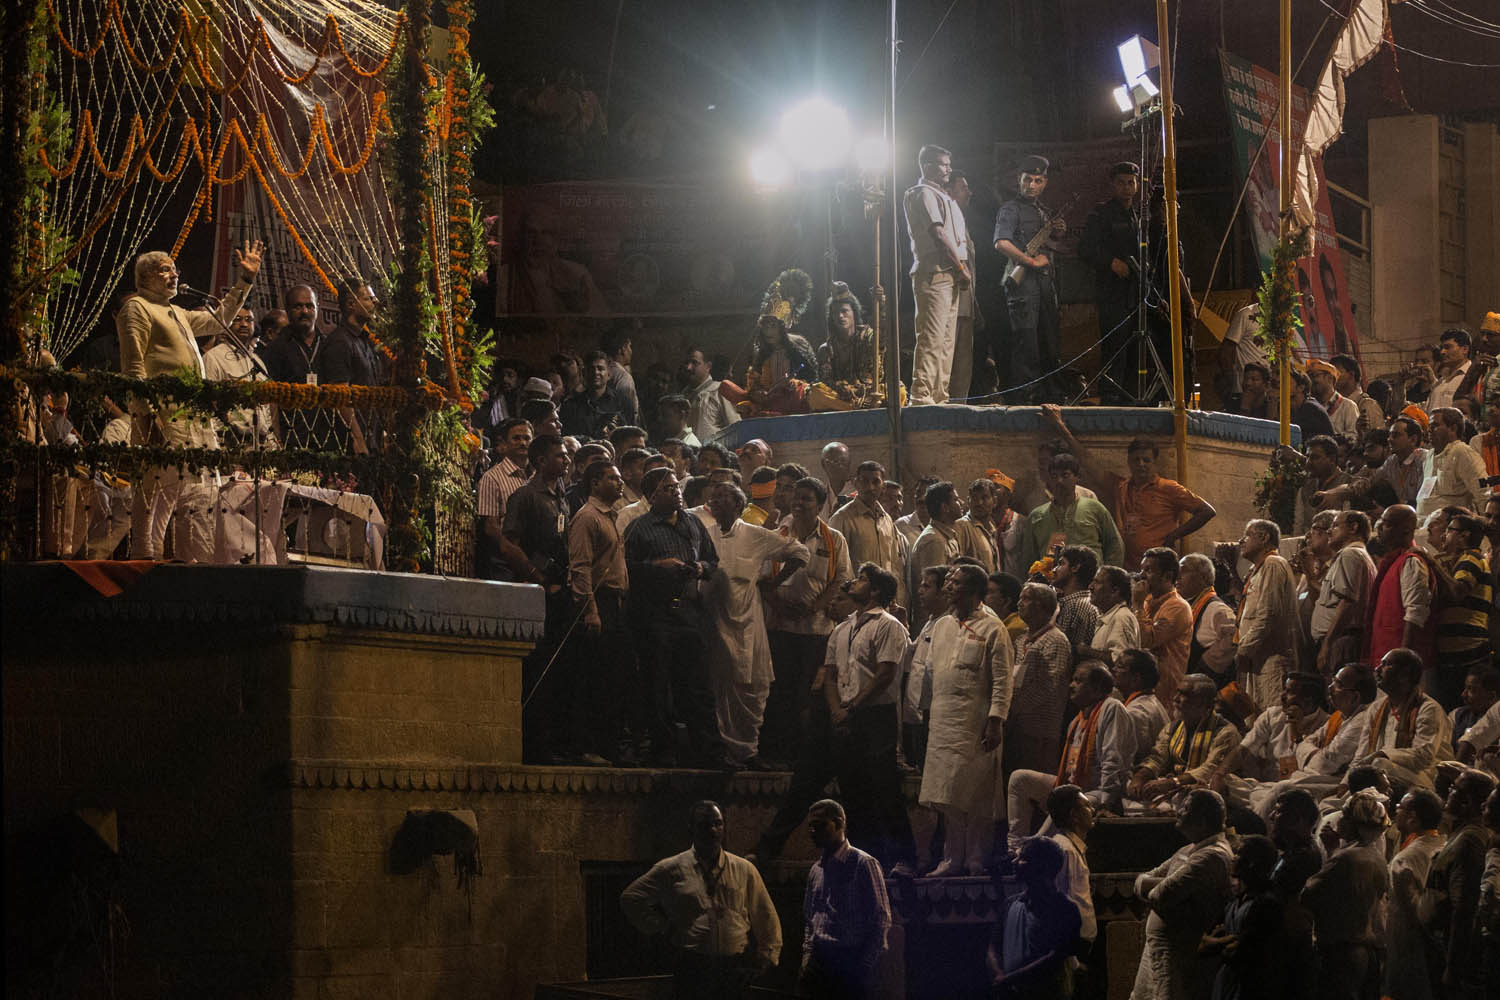 May 17, 2014. BJP leader Narendra Modi (top left) speaks to supporters after performing the Hindu Ganga Puja prayer ritual at the Dashaswamadeh Ghat on the Holy River Ganges the day after his election victory in Varanasi, India.